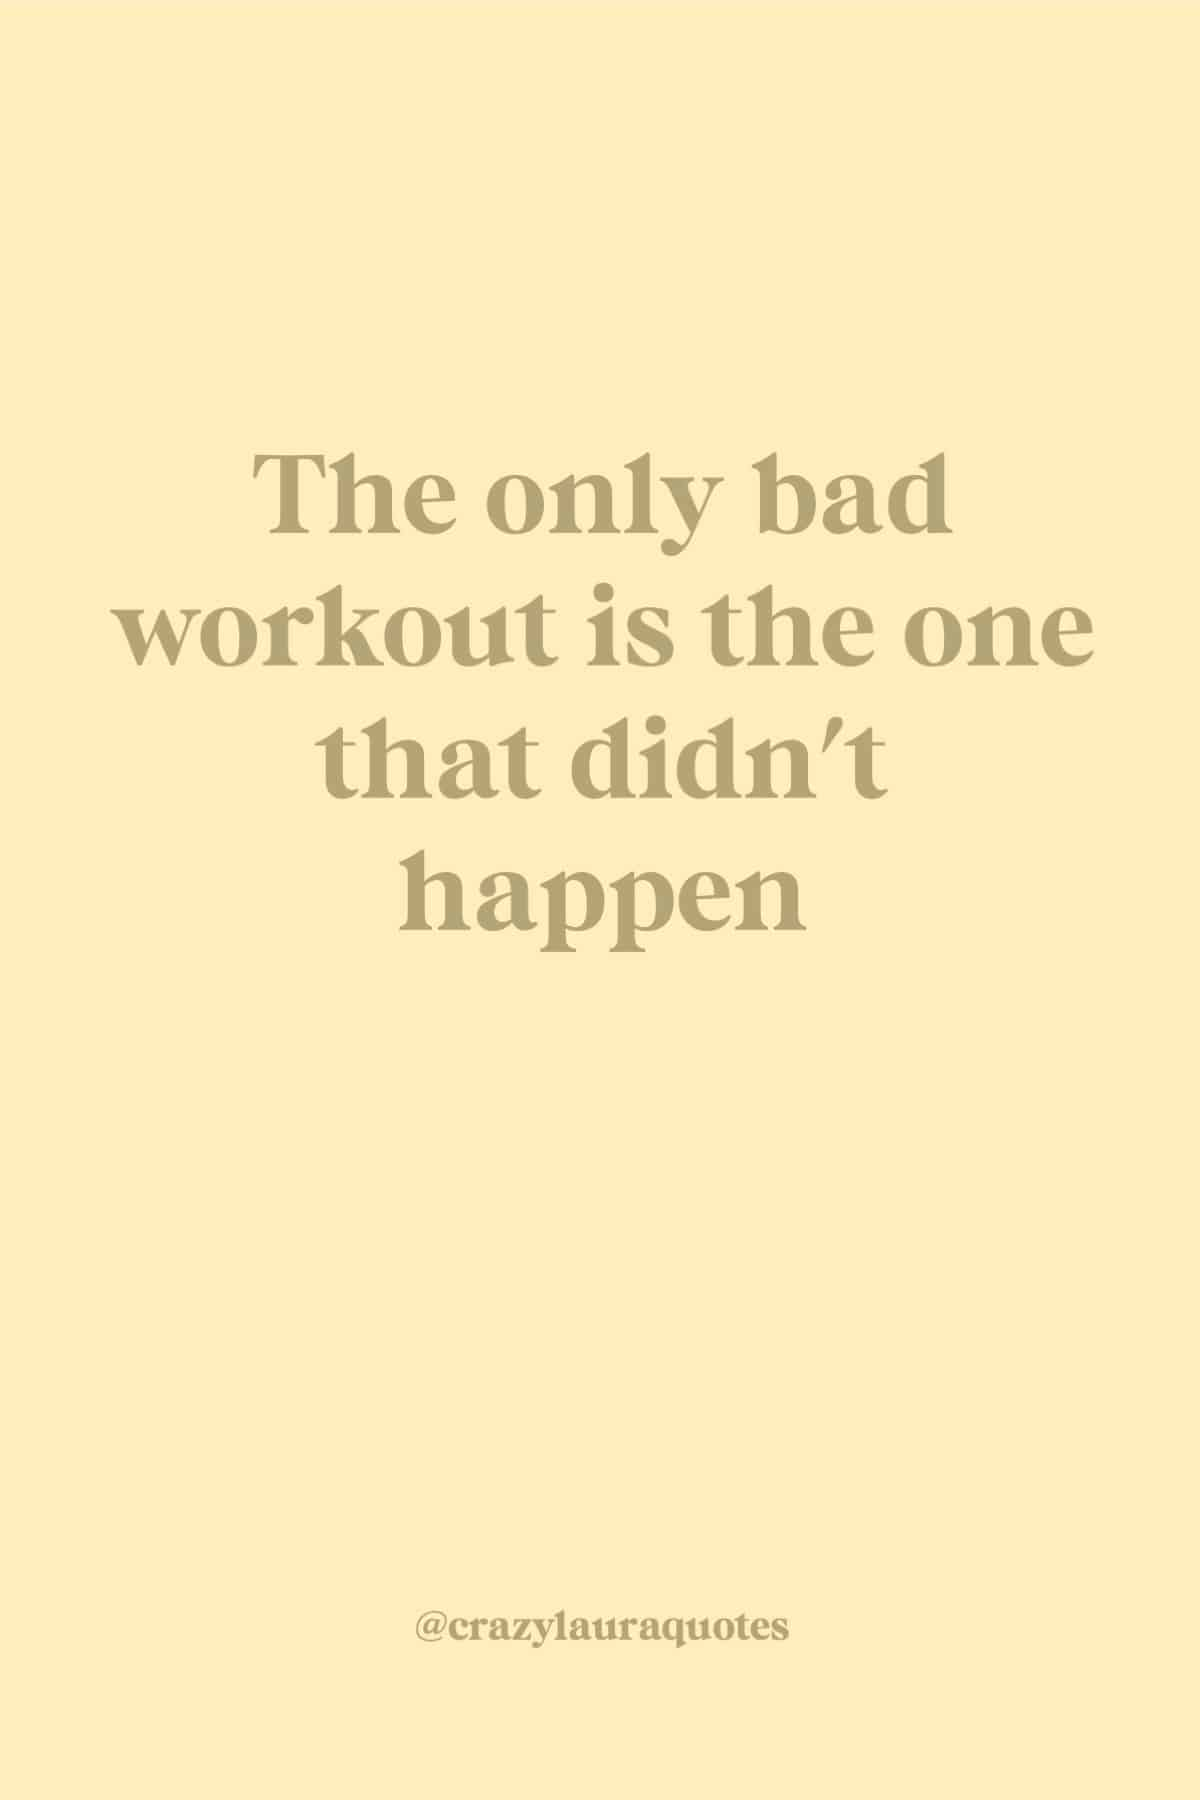 keep working out short quote